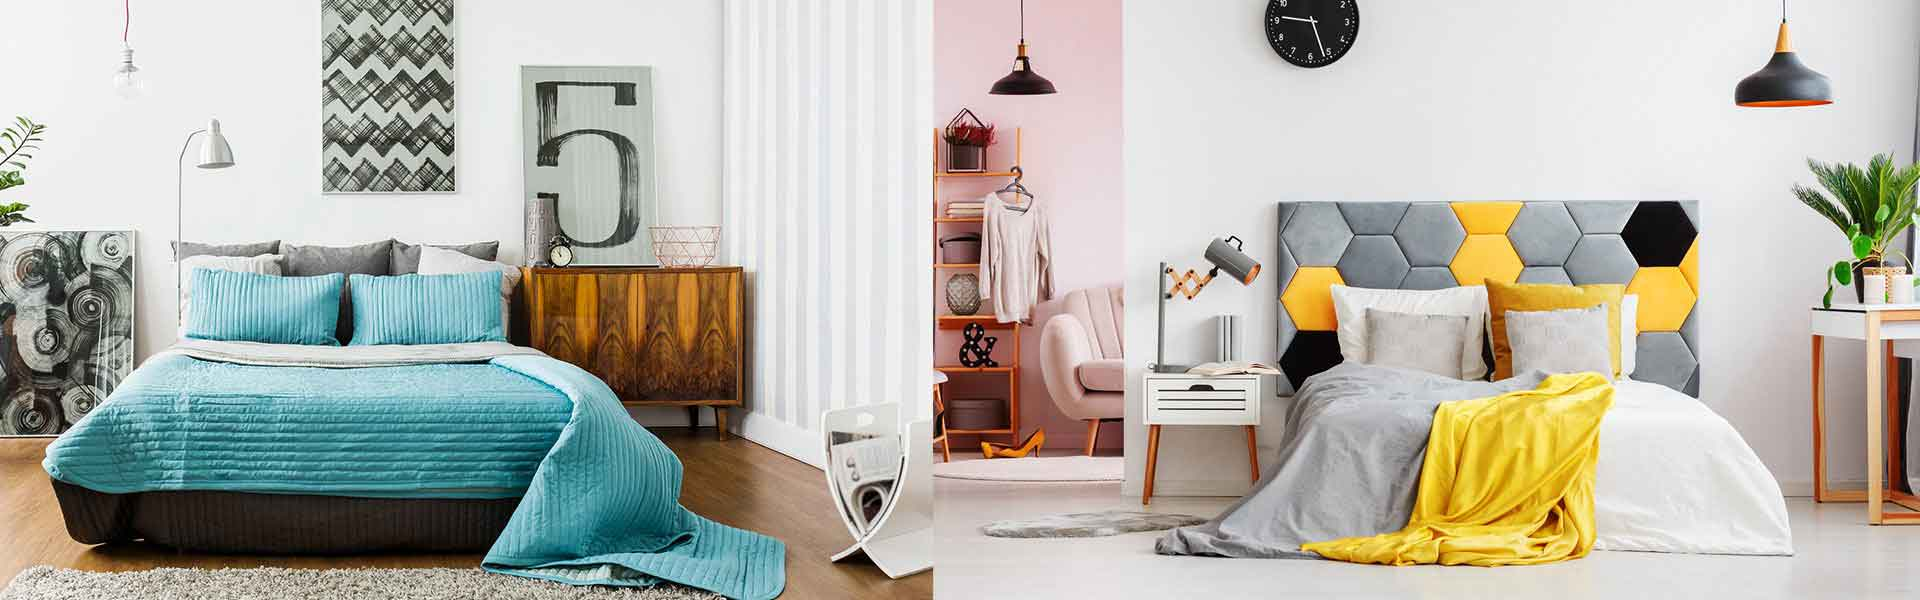 <h3>OUR BIGGEST EVER BEDROOM COLLECTION</h3> <p>Over 10,000 products to choose from <br />Free nationwide delivery</p> <a href='#'>Shop Now>></a>